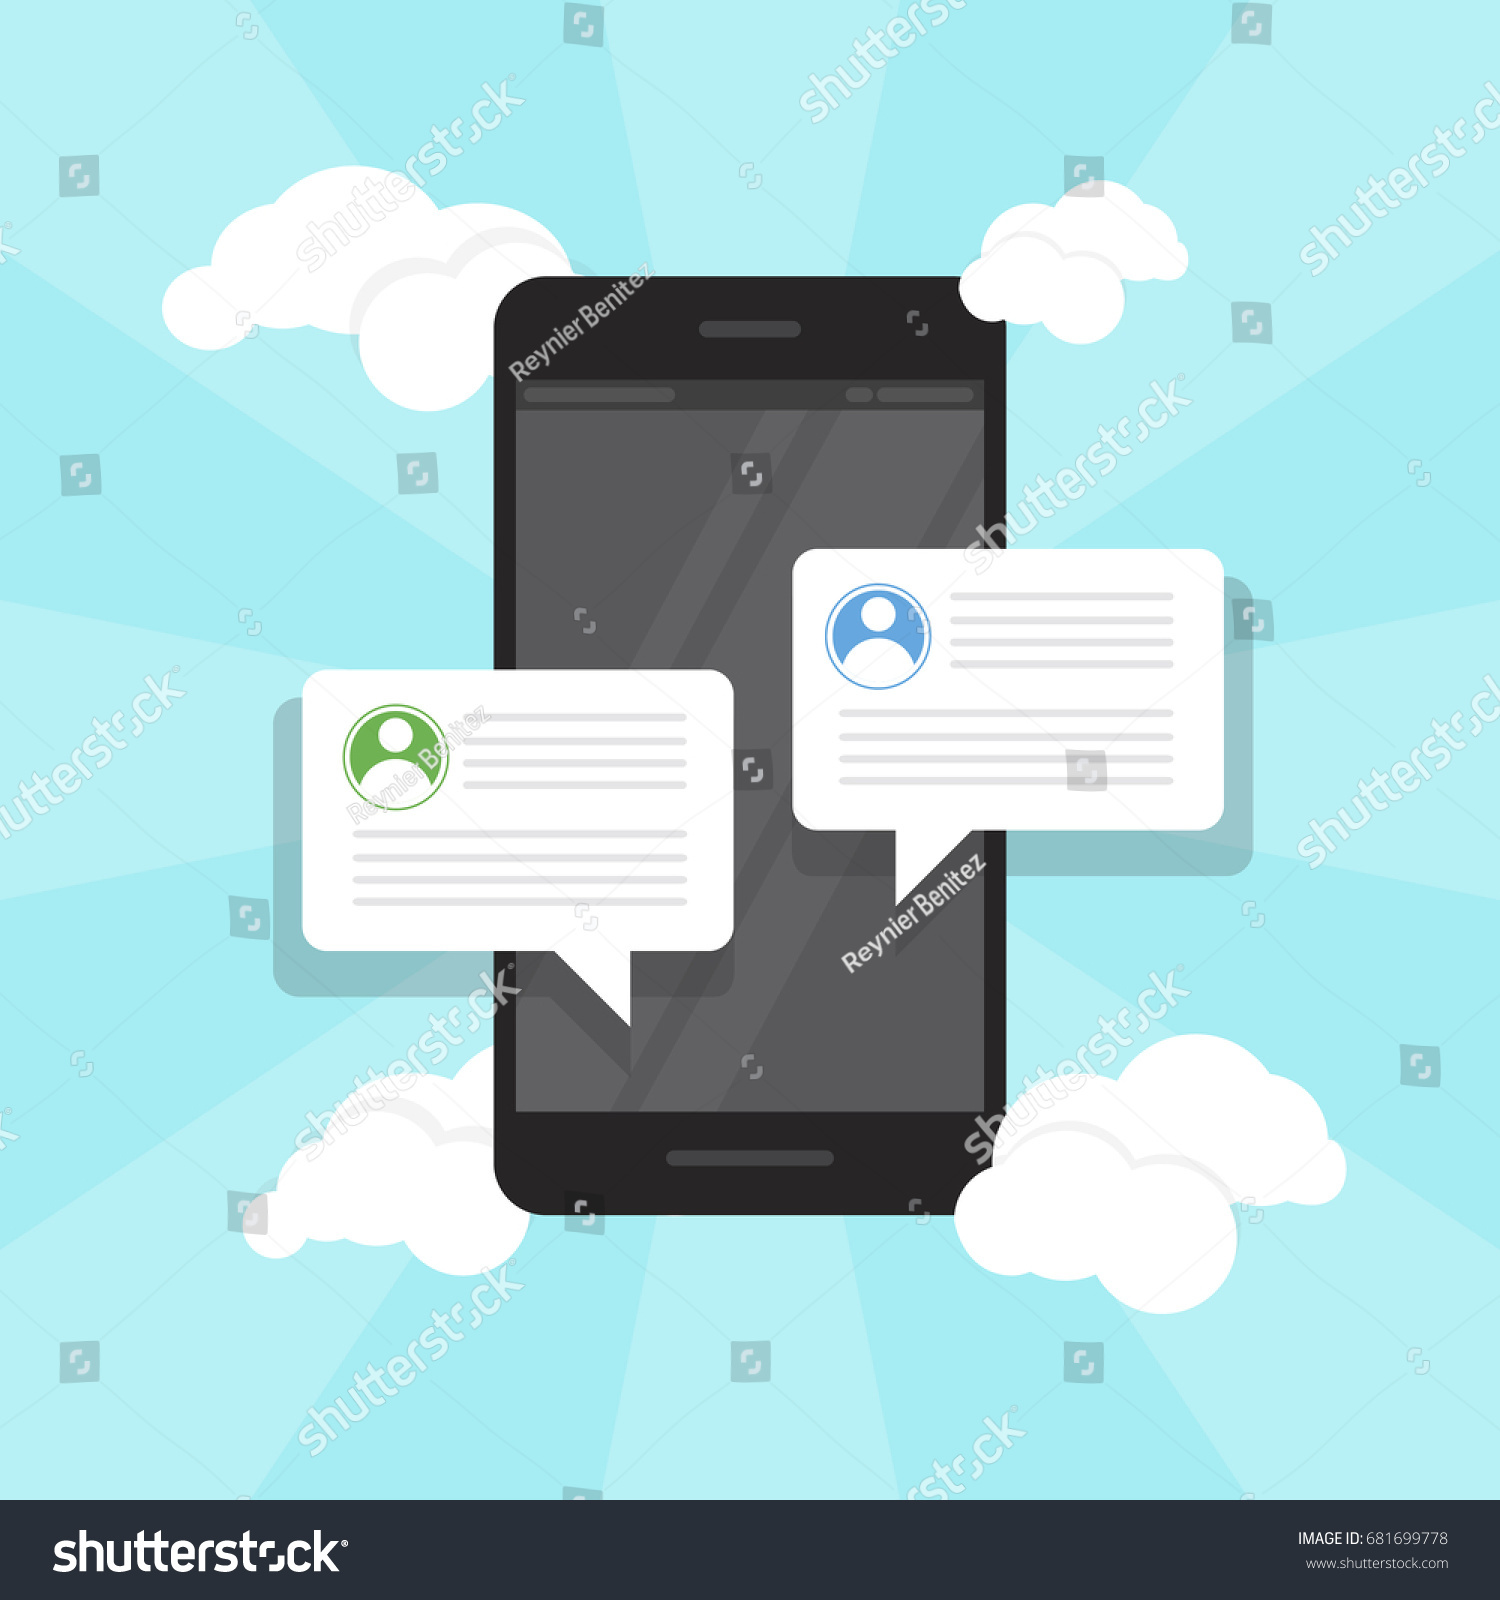 Text Messaging Flat Concept Vector Illustration Stock Vector ...